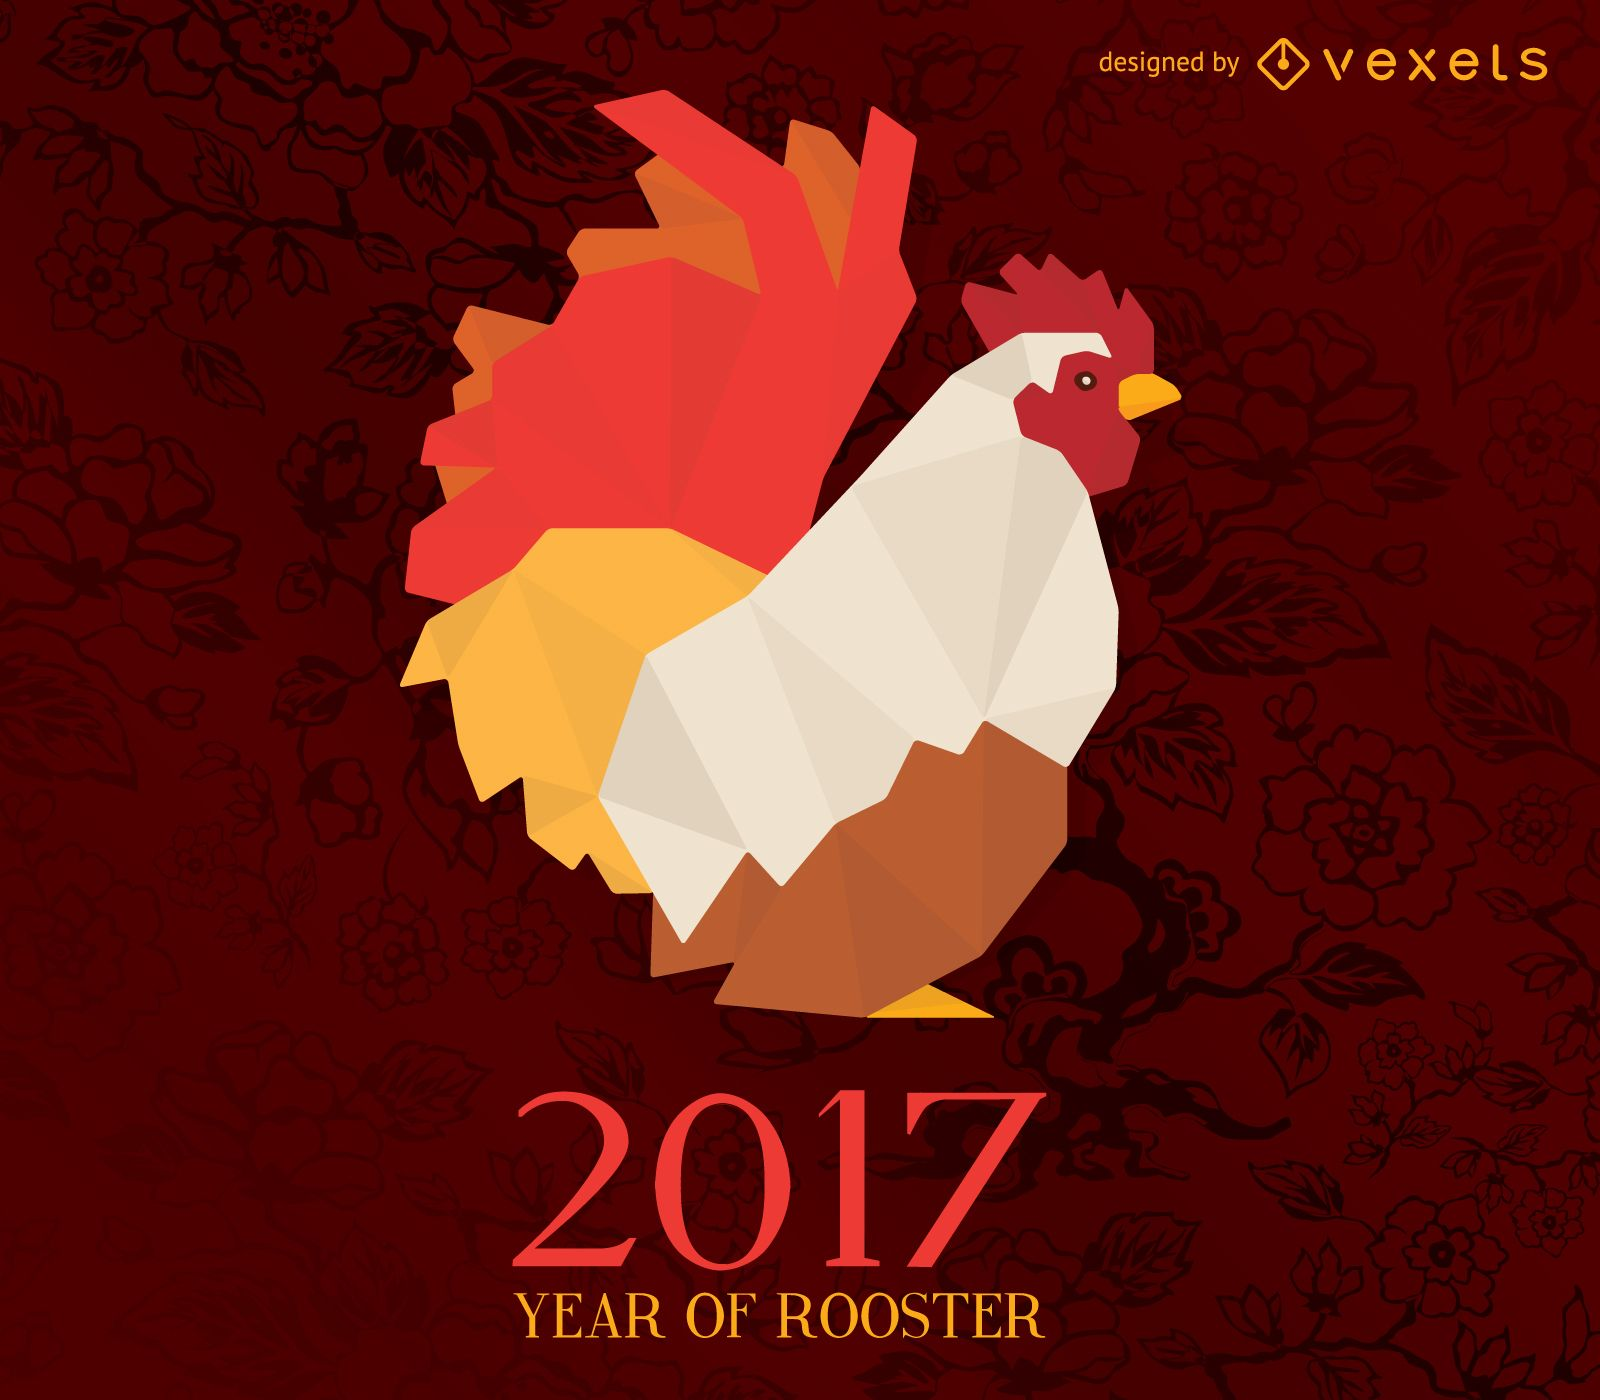 2017 year of rooster horoscope illustration